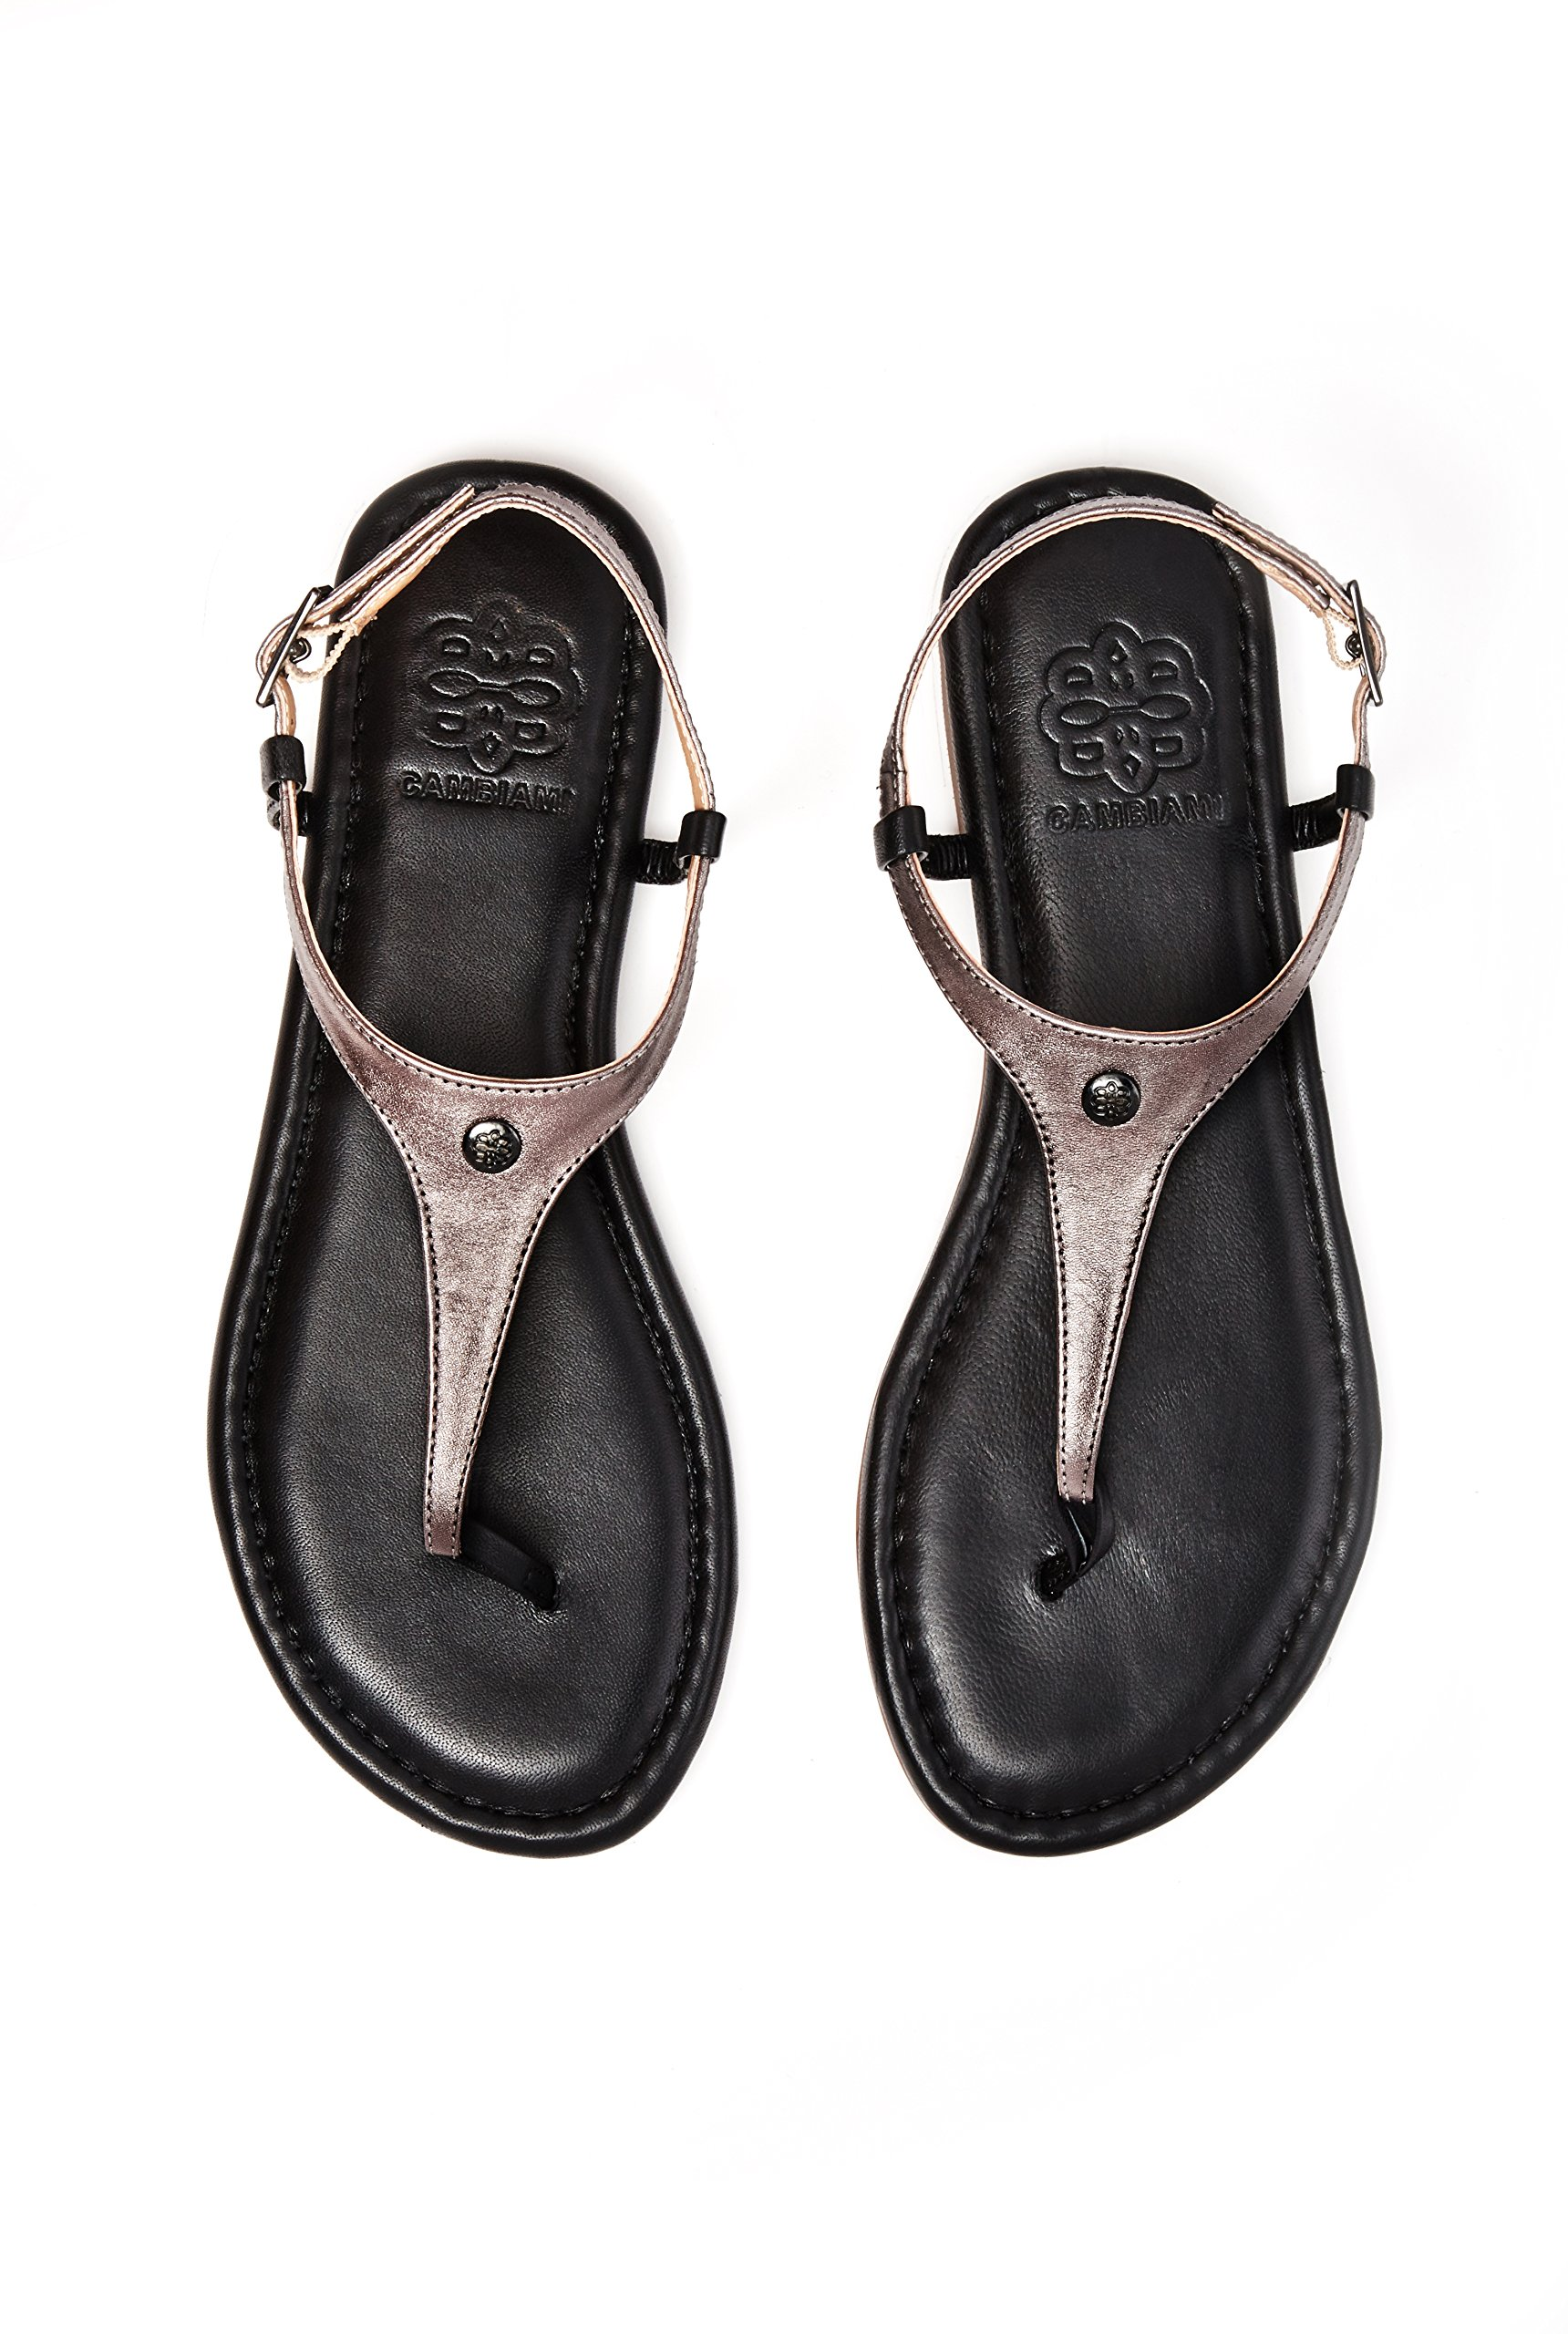 CAMBIAMI Black Leather T-Strap Slingback Flat Sandals - Includes Three Interchangeable Strap Sets (Black, Pewter, Snake Print) & Black Sole - Stylish & Comfortable - Women's Size 8 by CAMBIAMI (Image #8)